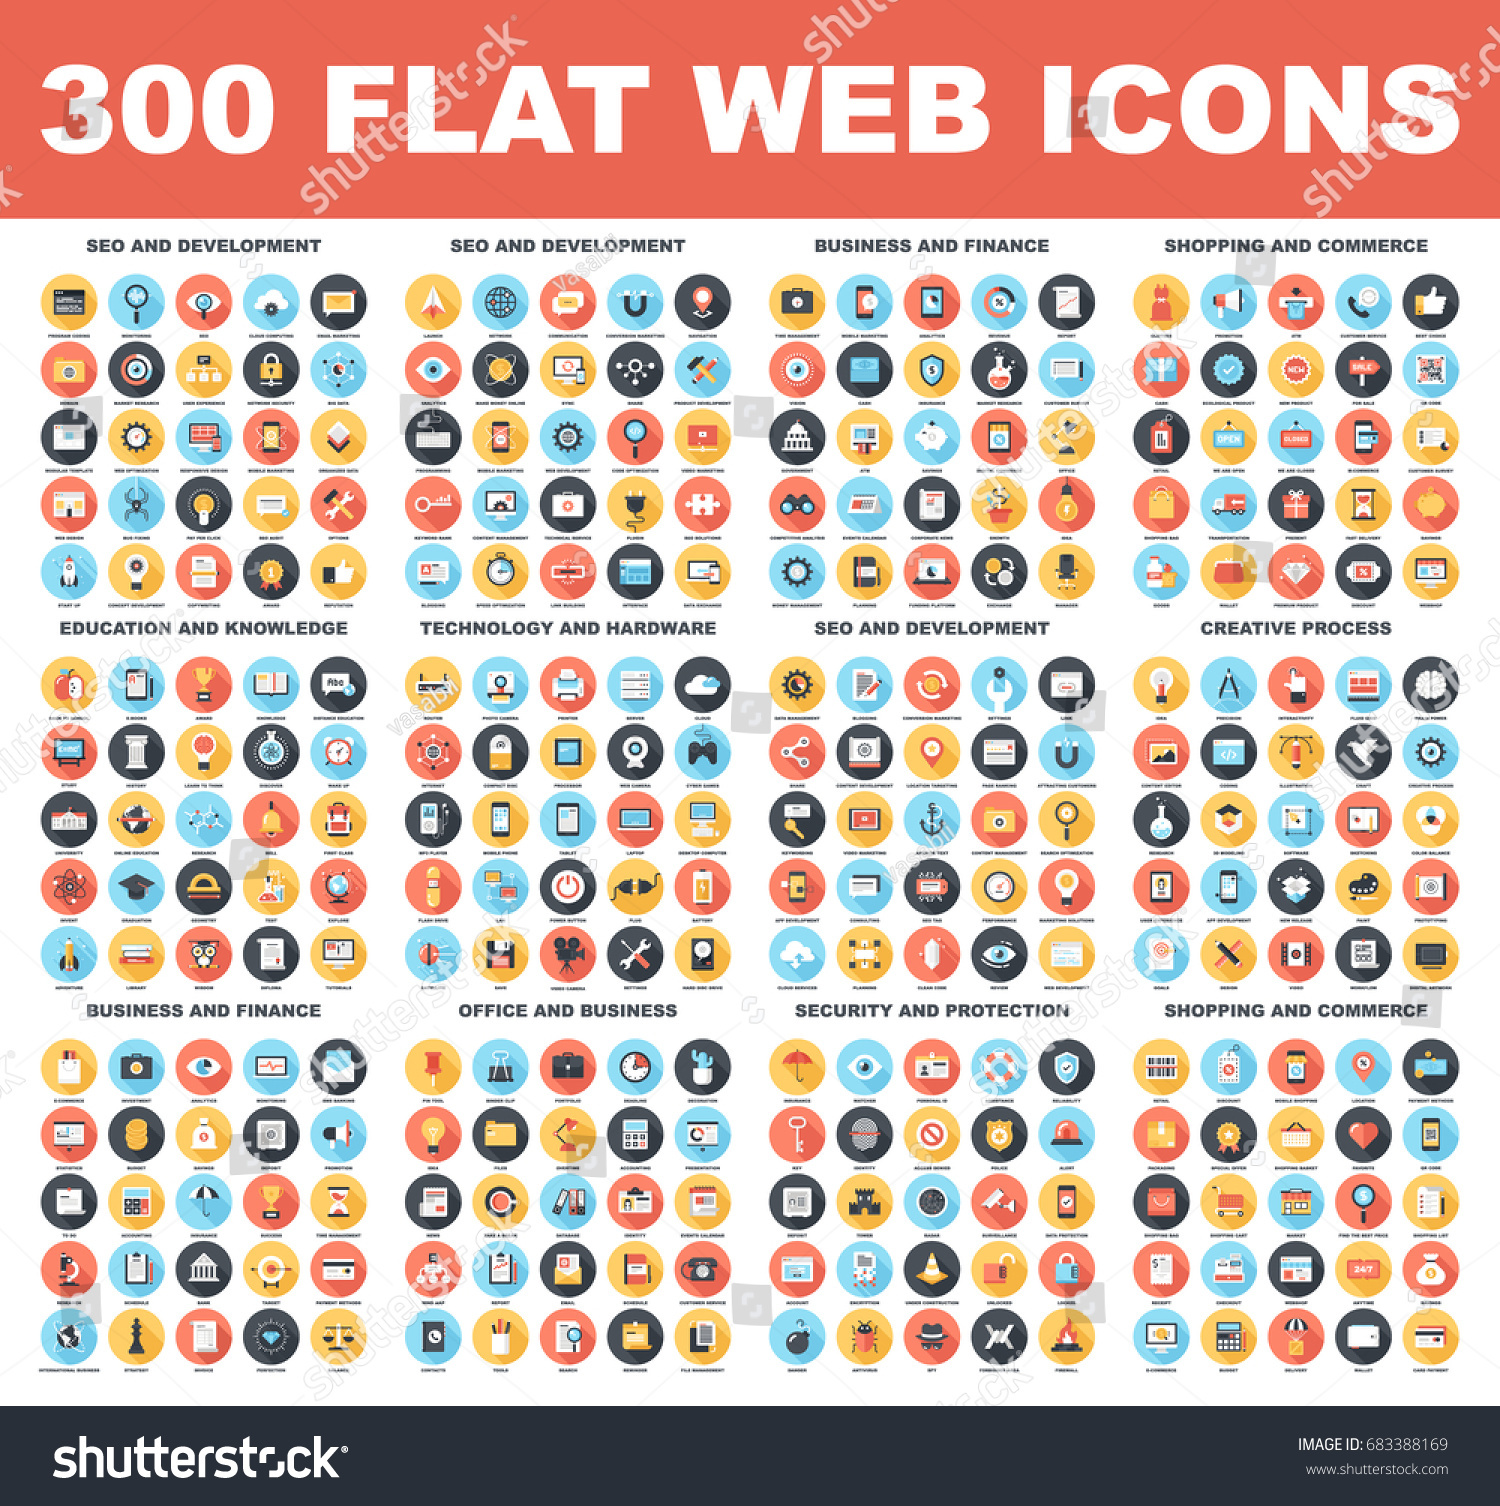 300 Flat web icons - SEO and development, creative process, business and finance, office and business, security and protection, shopping and commerce, education and knowledge, technology and hardware #683388169